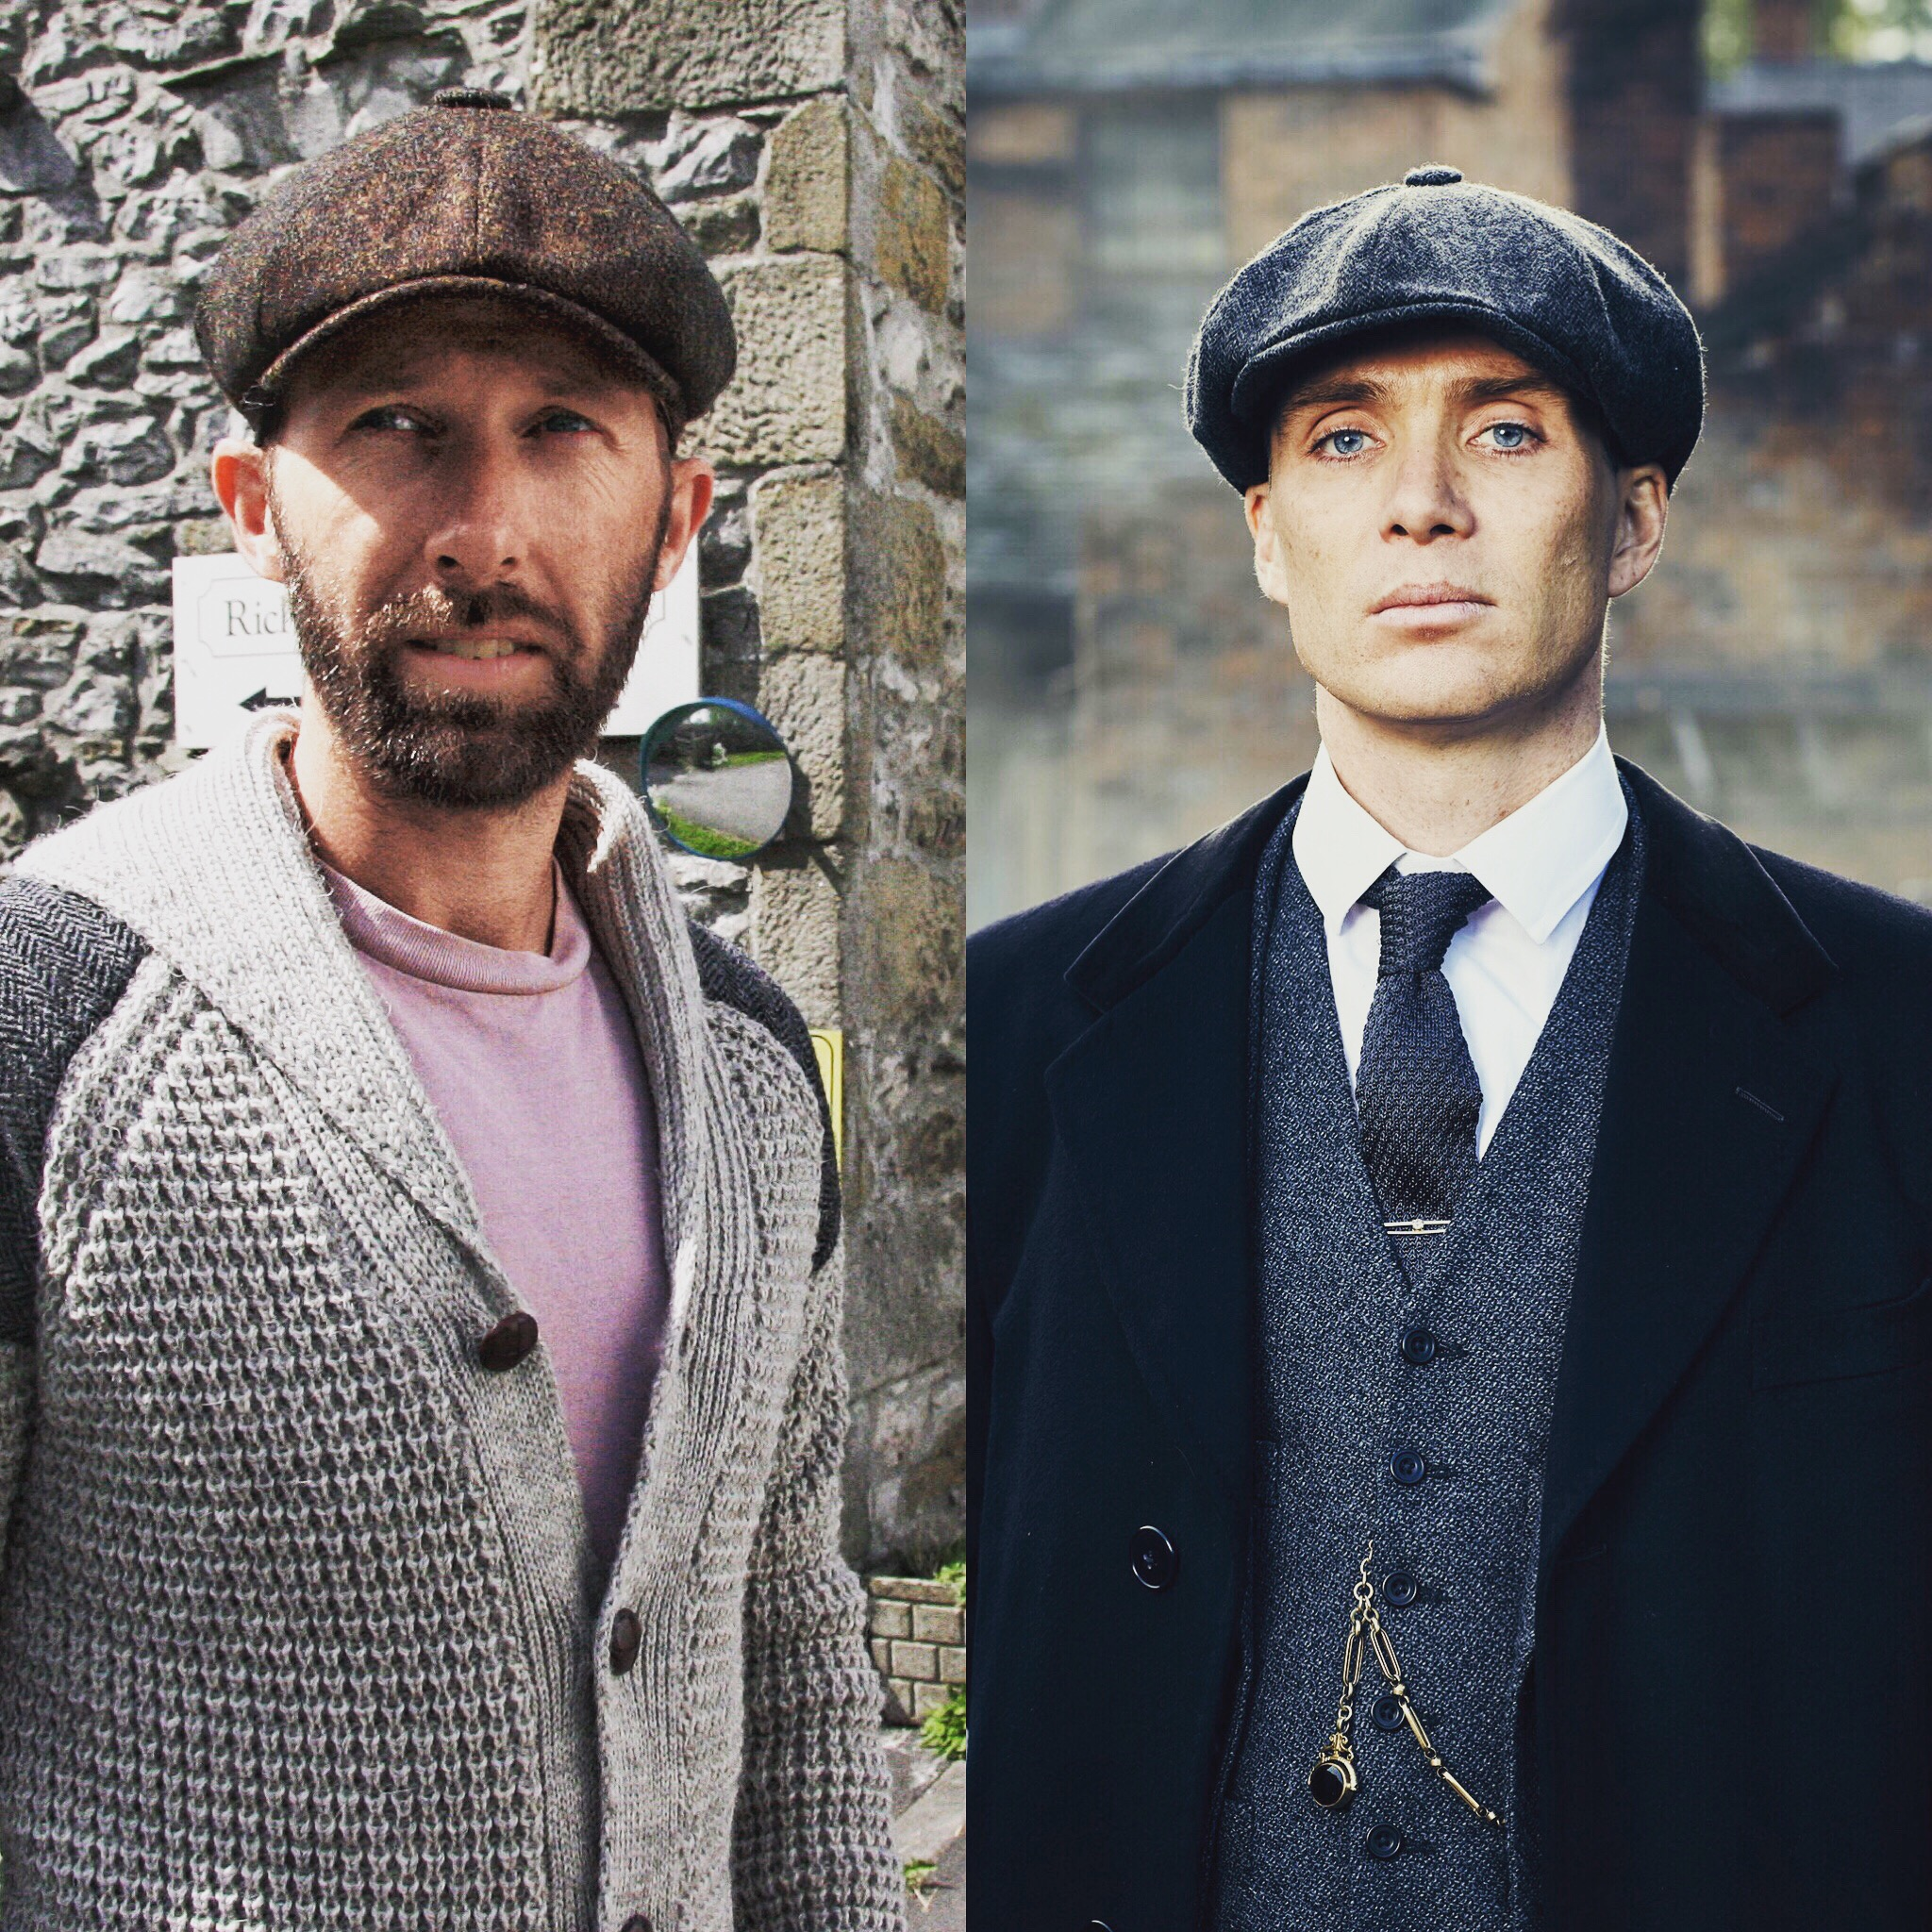 Glencroft Peaky cap and Tommy Shelby